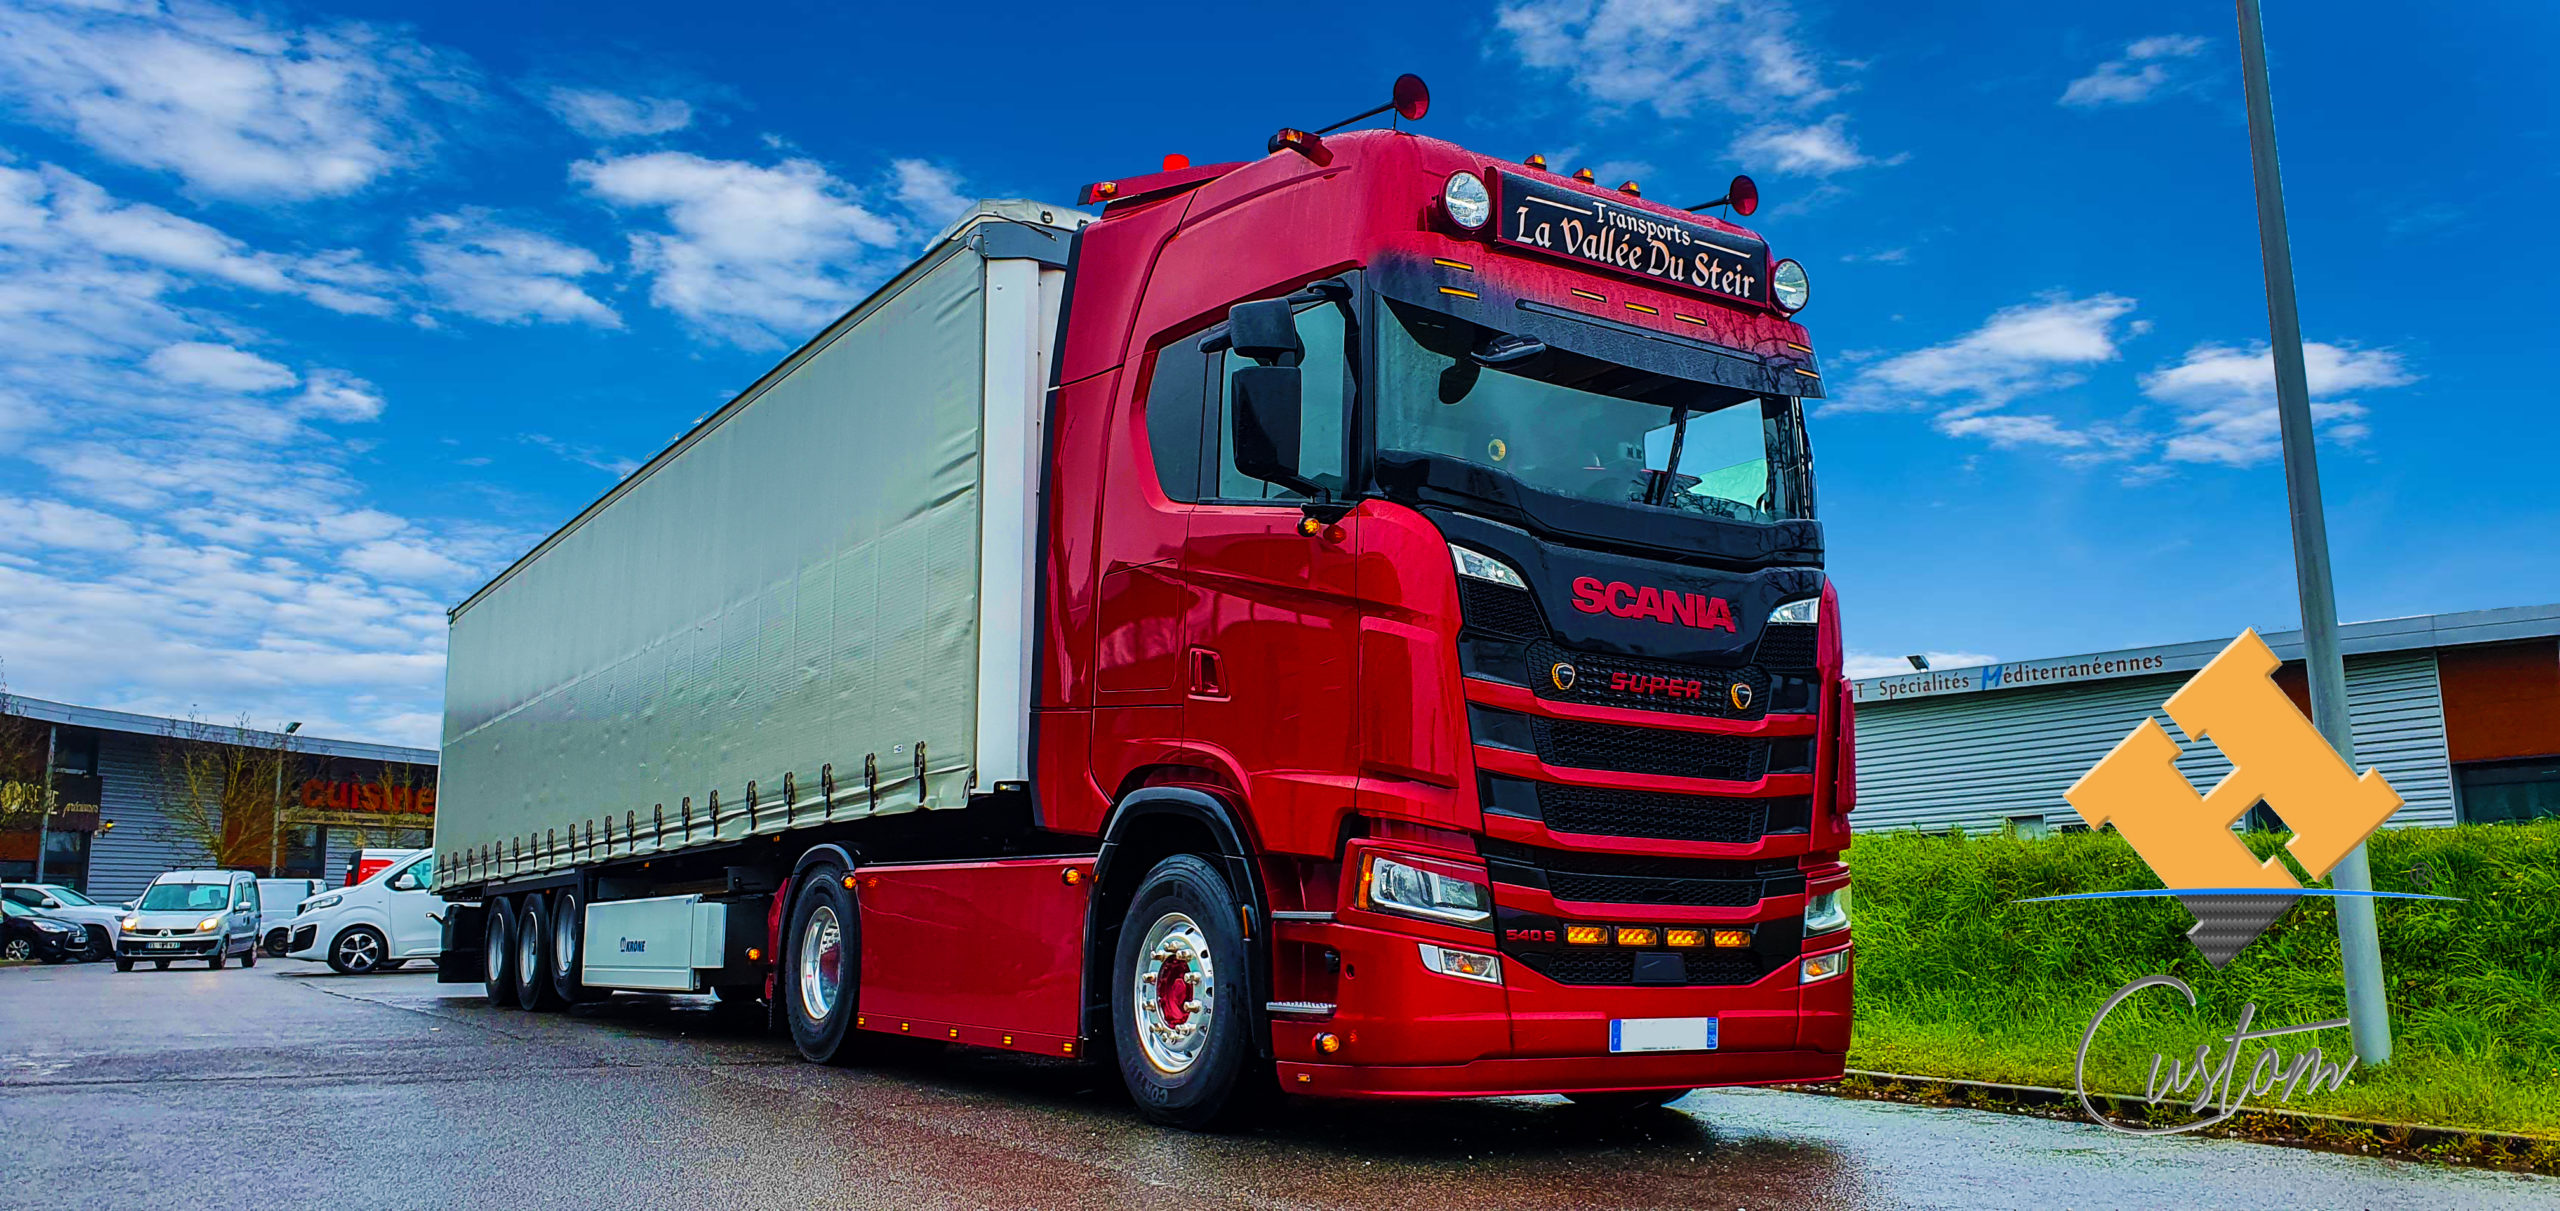 Scania Red Pearl